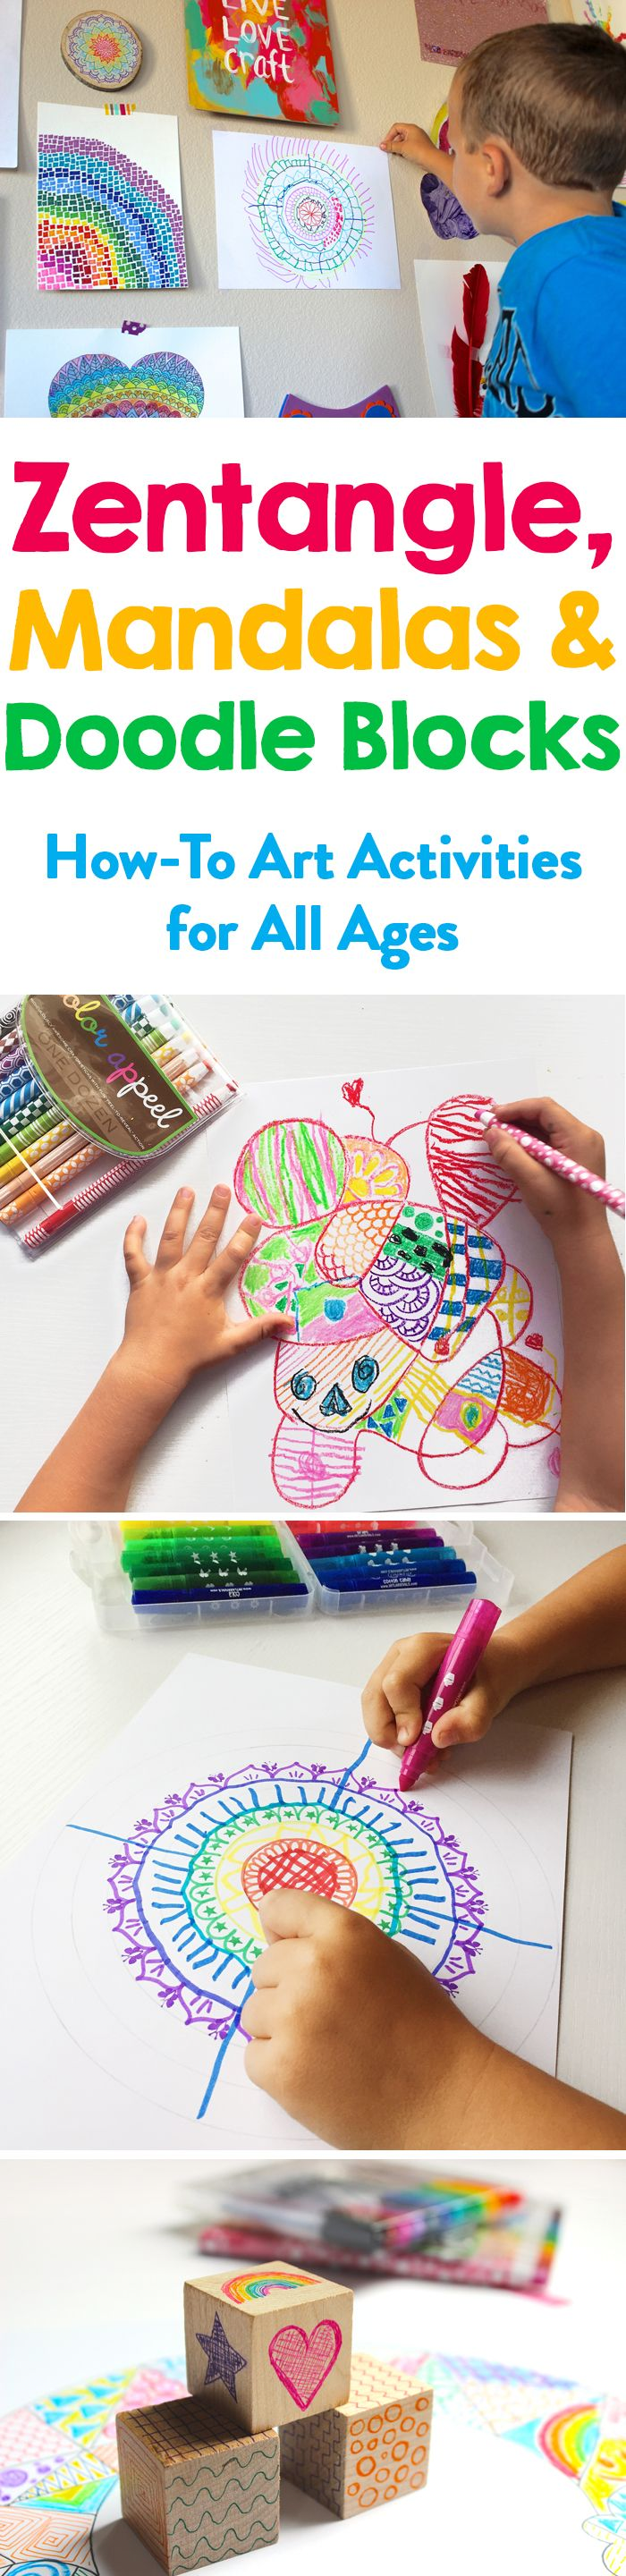 Easy step by step Zentangle, Mandalas, and a creative doodle game for kids and adults to promote your creativity.